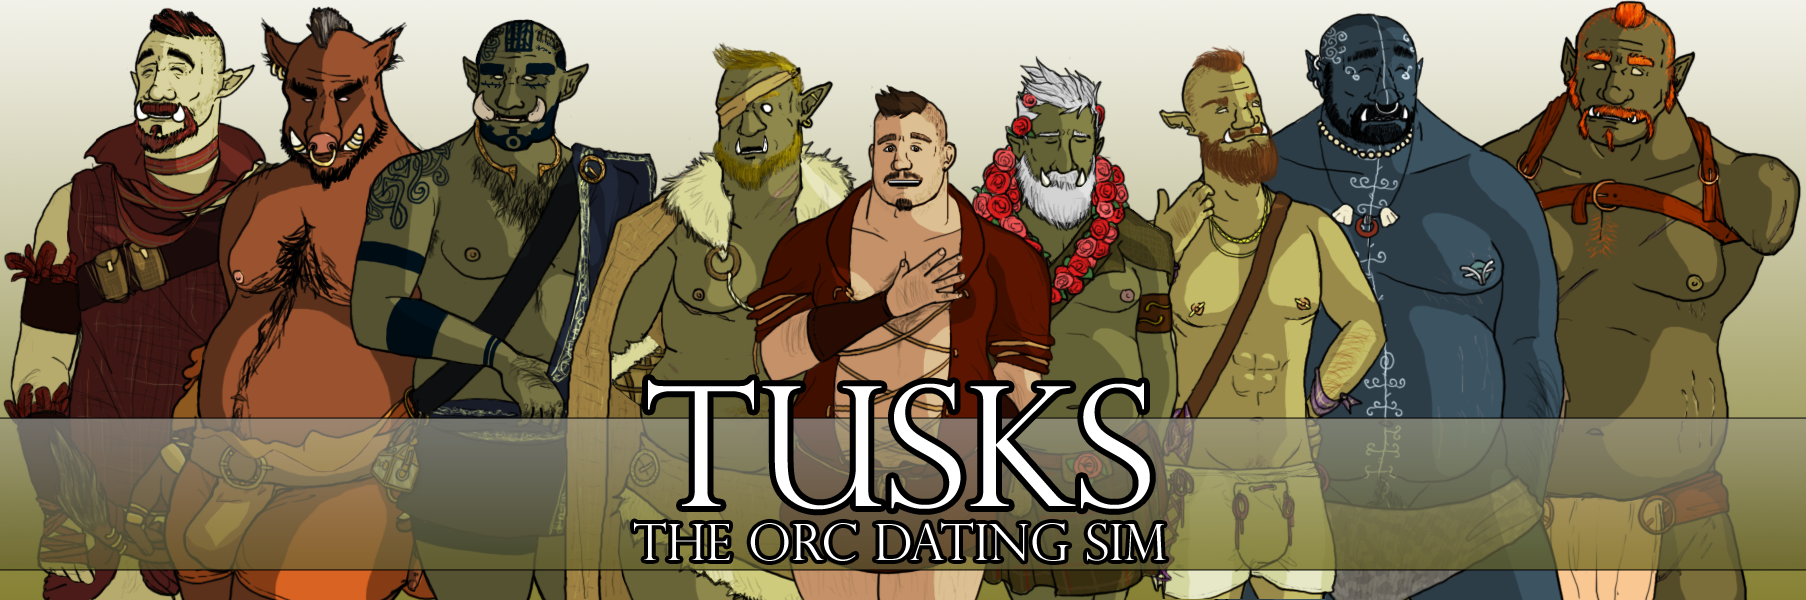 Flash dating sims